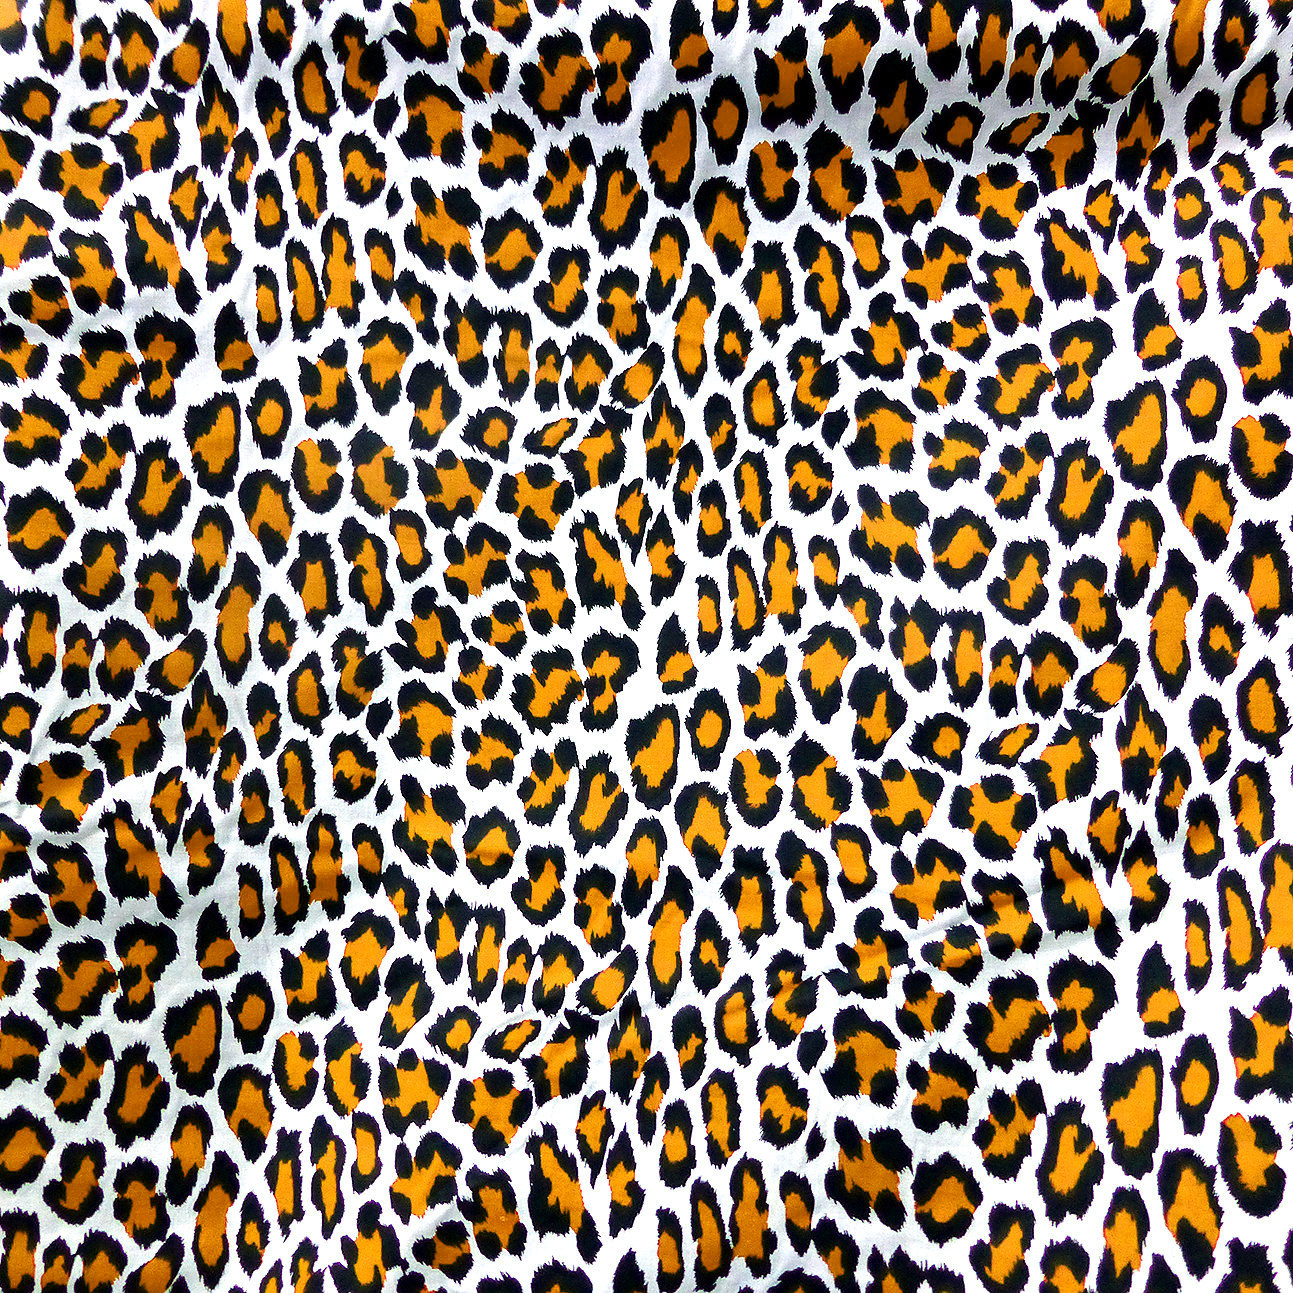 Animal Print Fabric Leopard Black White Orange Pure Cotton Quilting Decoration Throw Pillows African Design Tribal Fancy Dress